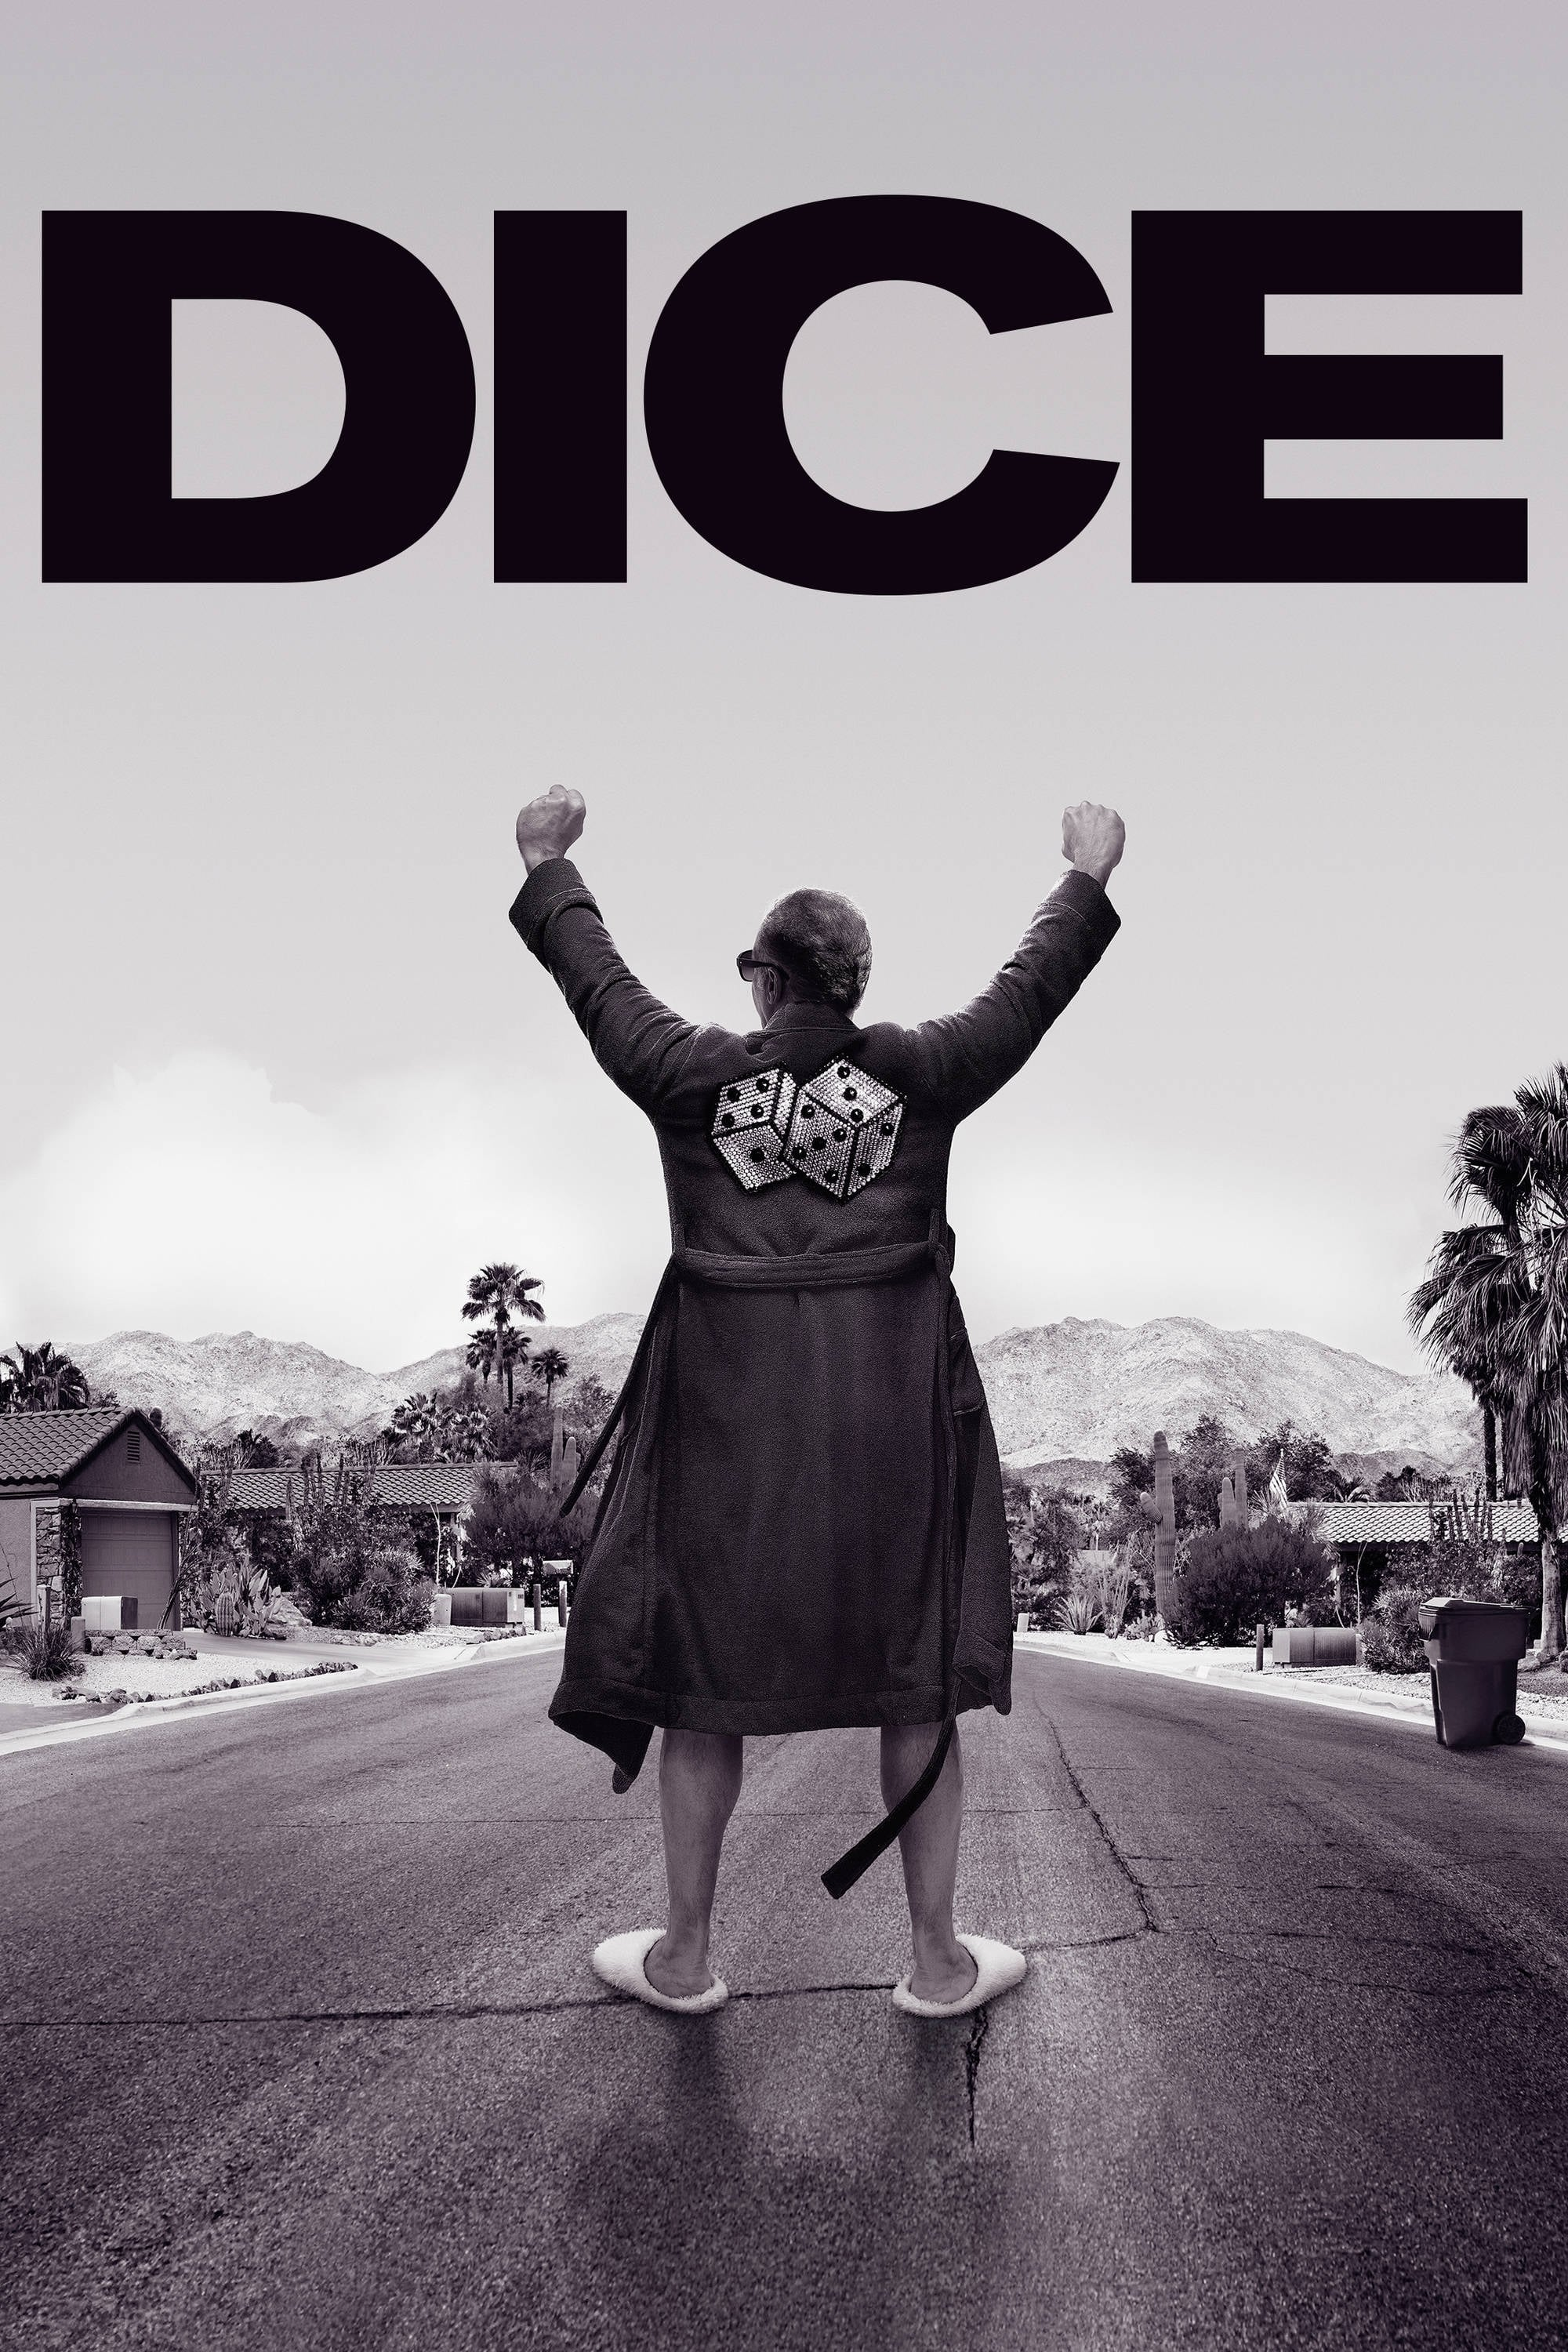 image for Dice